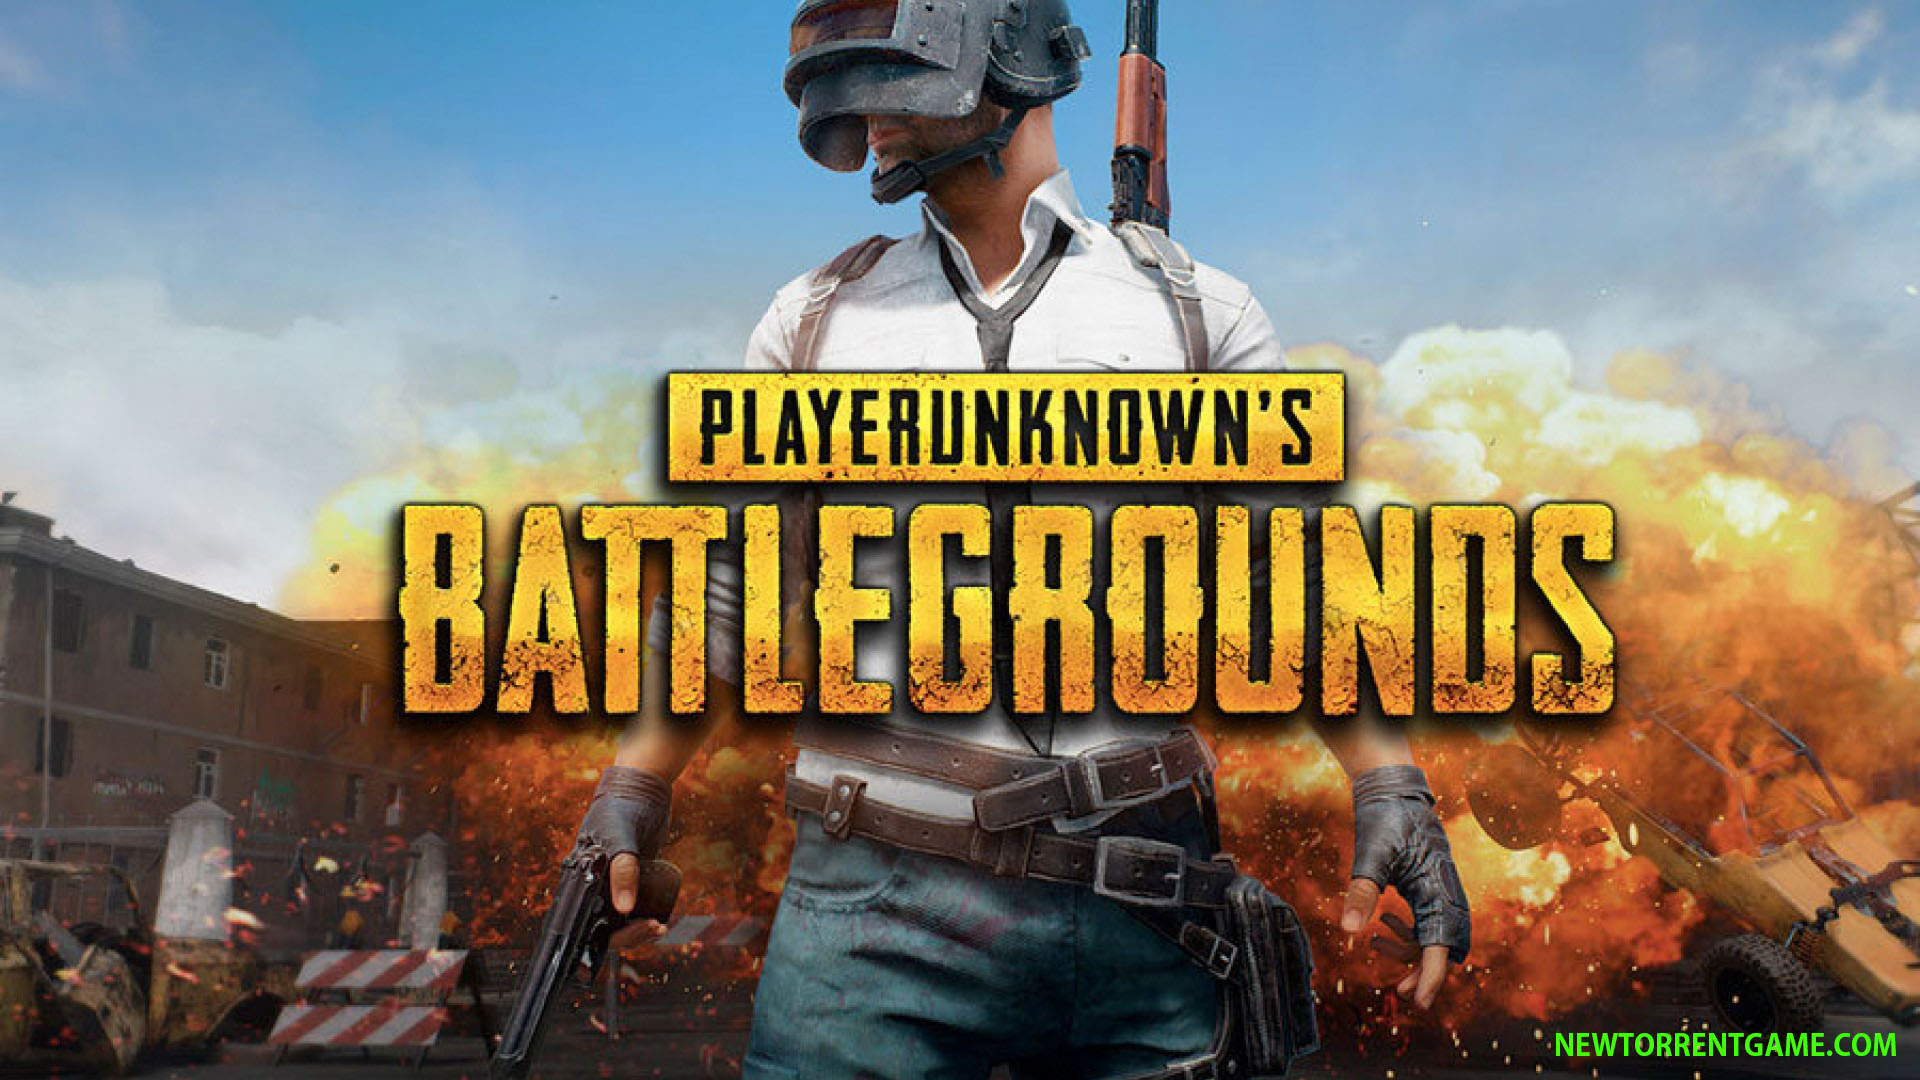 PLAYERUNKNOWN'S BATTLEGROUNDS crack download